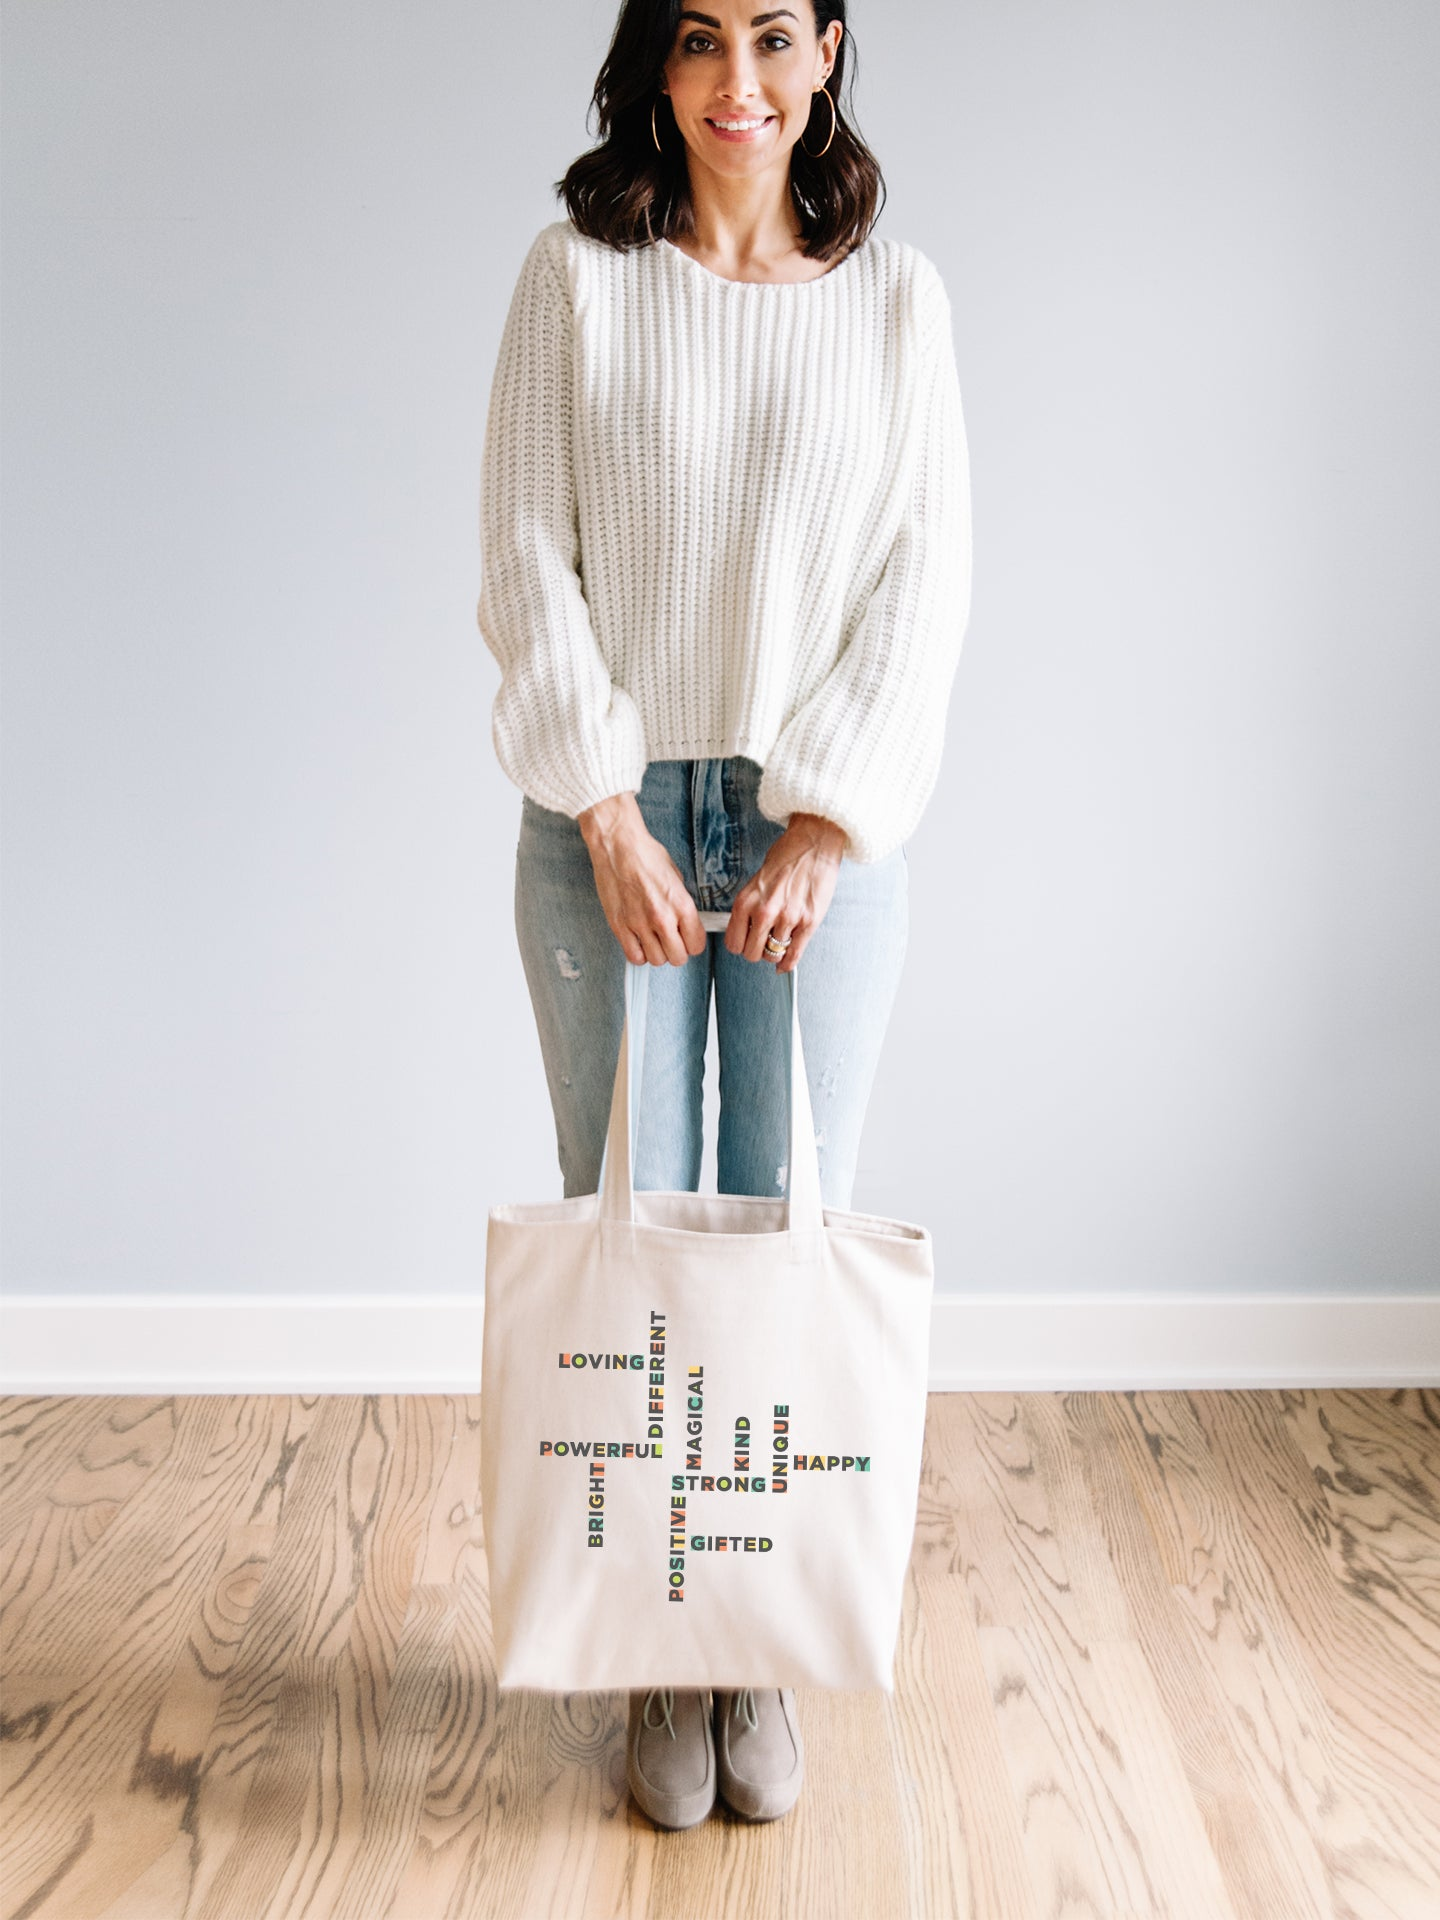 The Power of Words - Natural Organic Tote